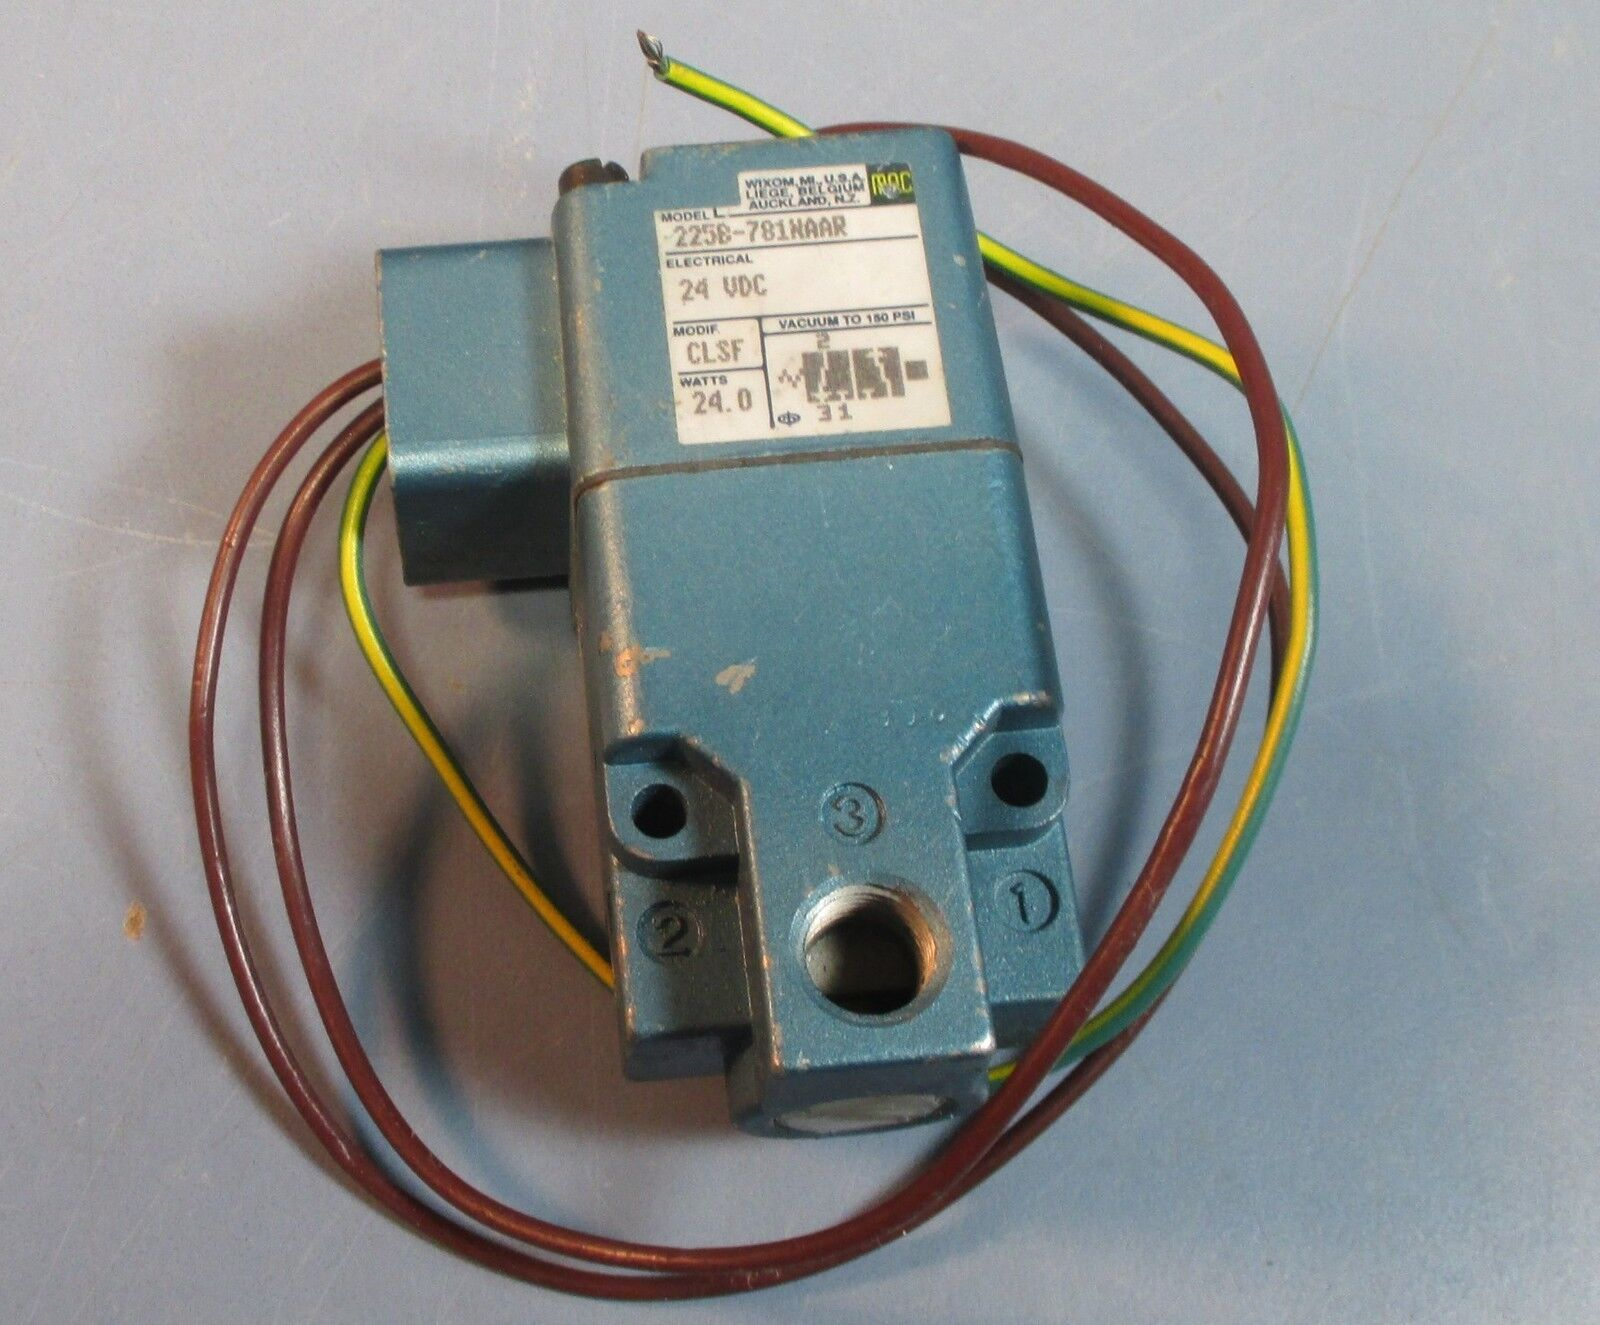 Valves Manifolds Hydraulics Pneumatics Pumps Business Mac Solenoid Valve Wiring 225b 781naar 24 Vdc 3 Wire Connection Nwob